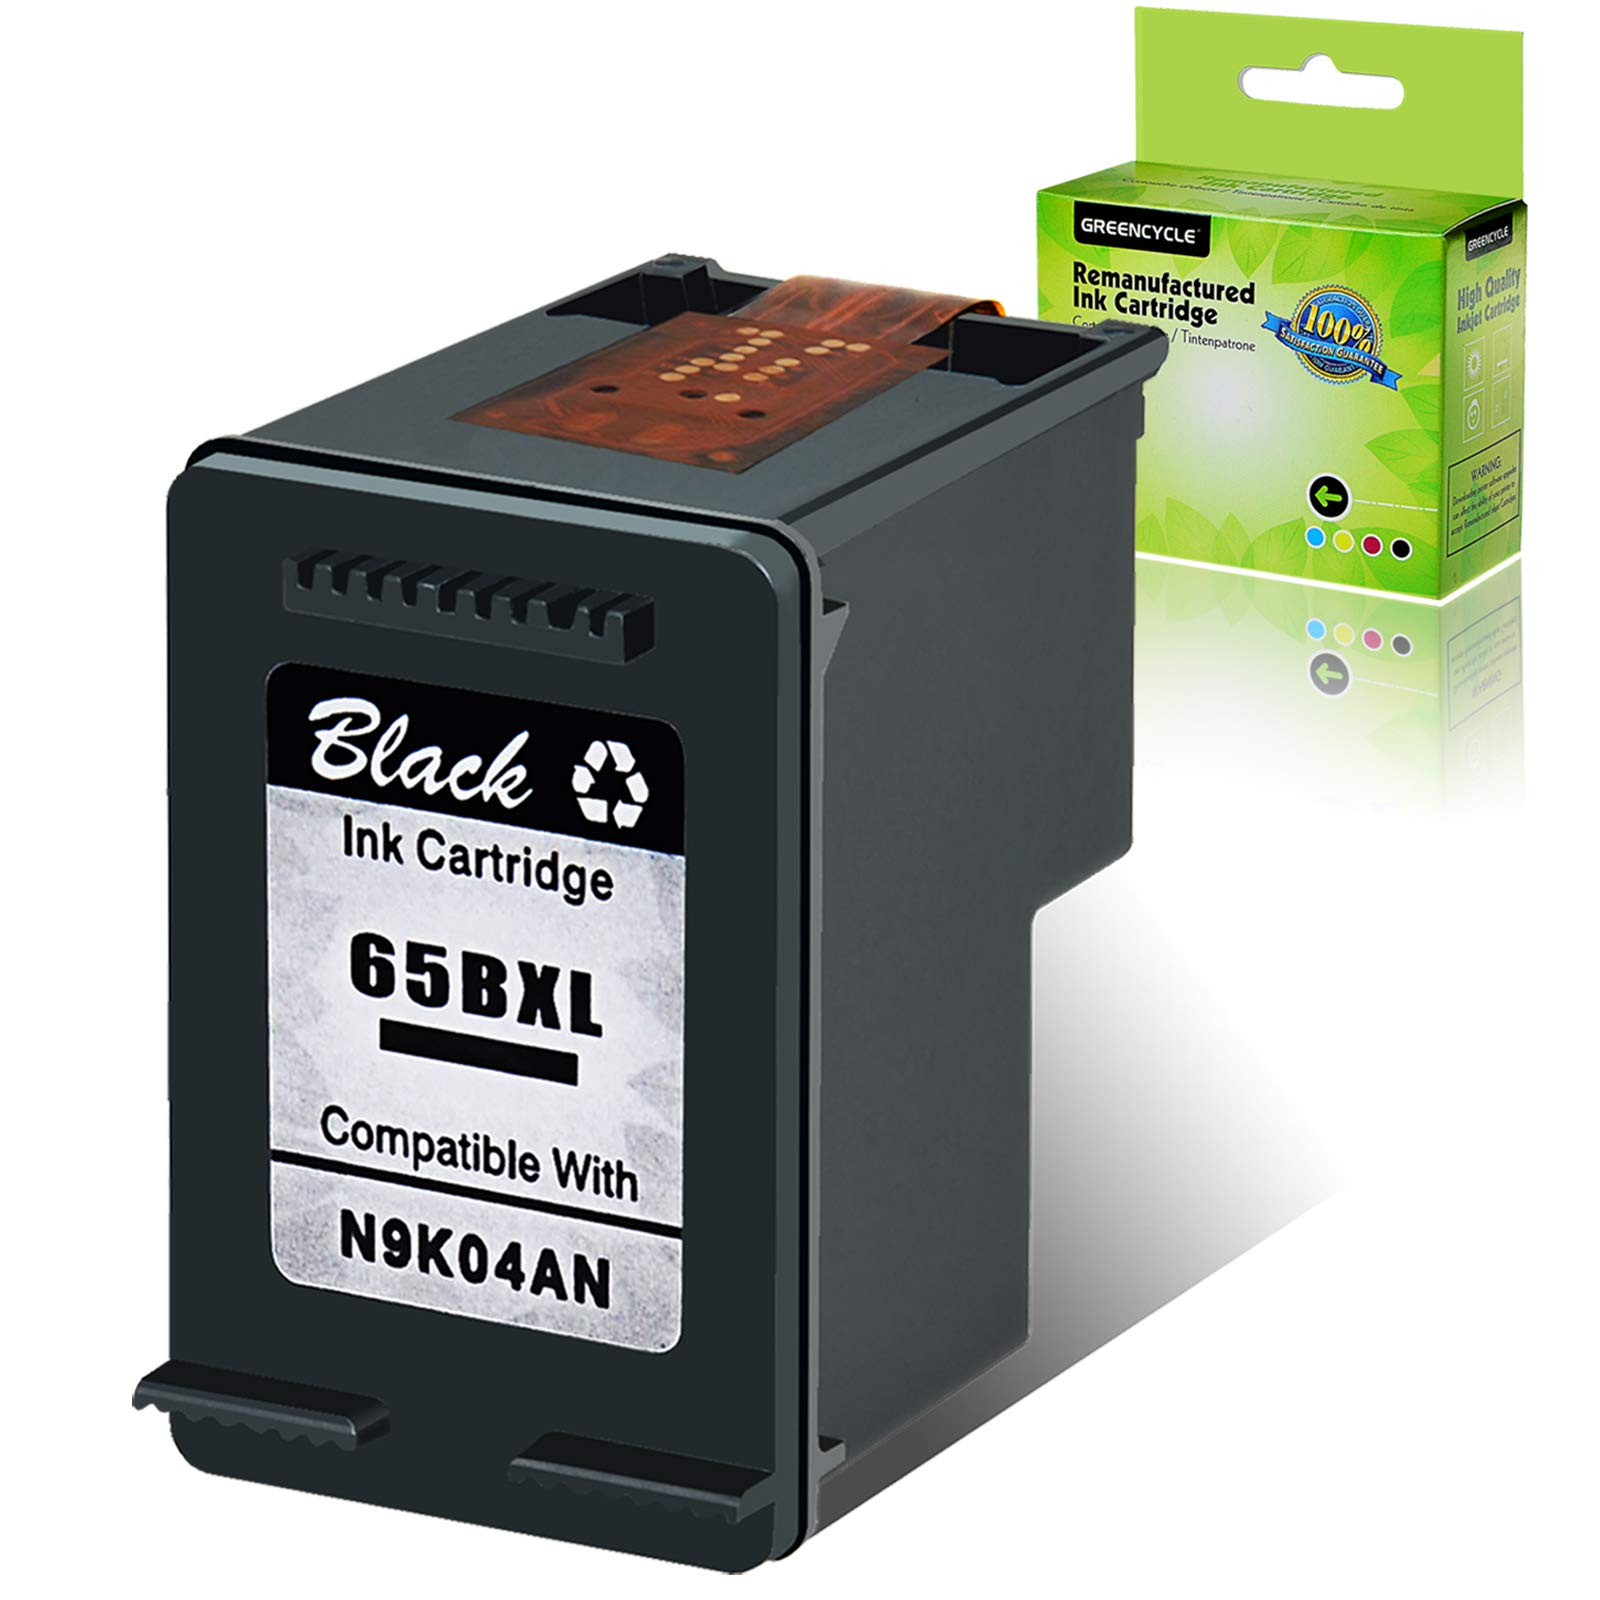 GREENCYCLE Re-Manufactured 65XL 65BXL Ink Cartridge Compatible for HP Envy 5055 5052 5058 Deskjet 2655 2652 2622 3720 3730 3752 3758 All-in-One Printer, with New Version chip (Black, 1 Pack)